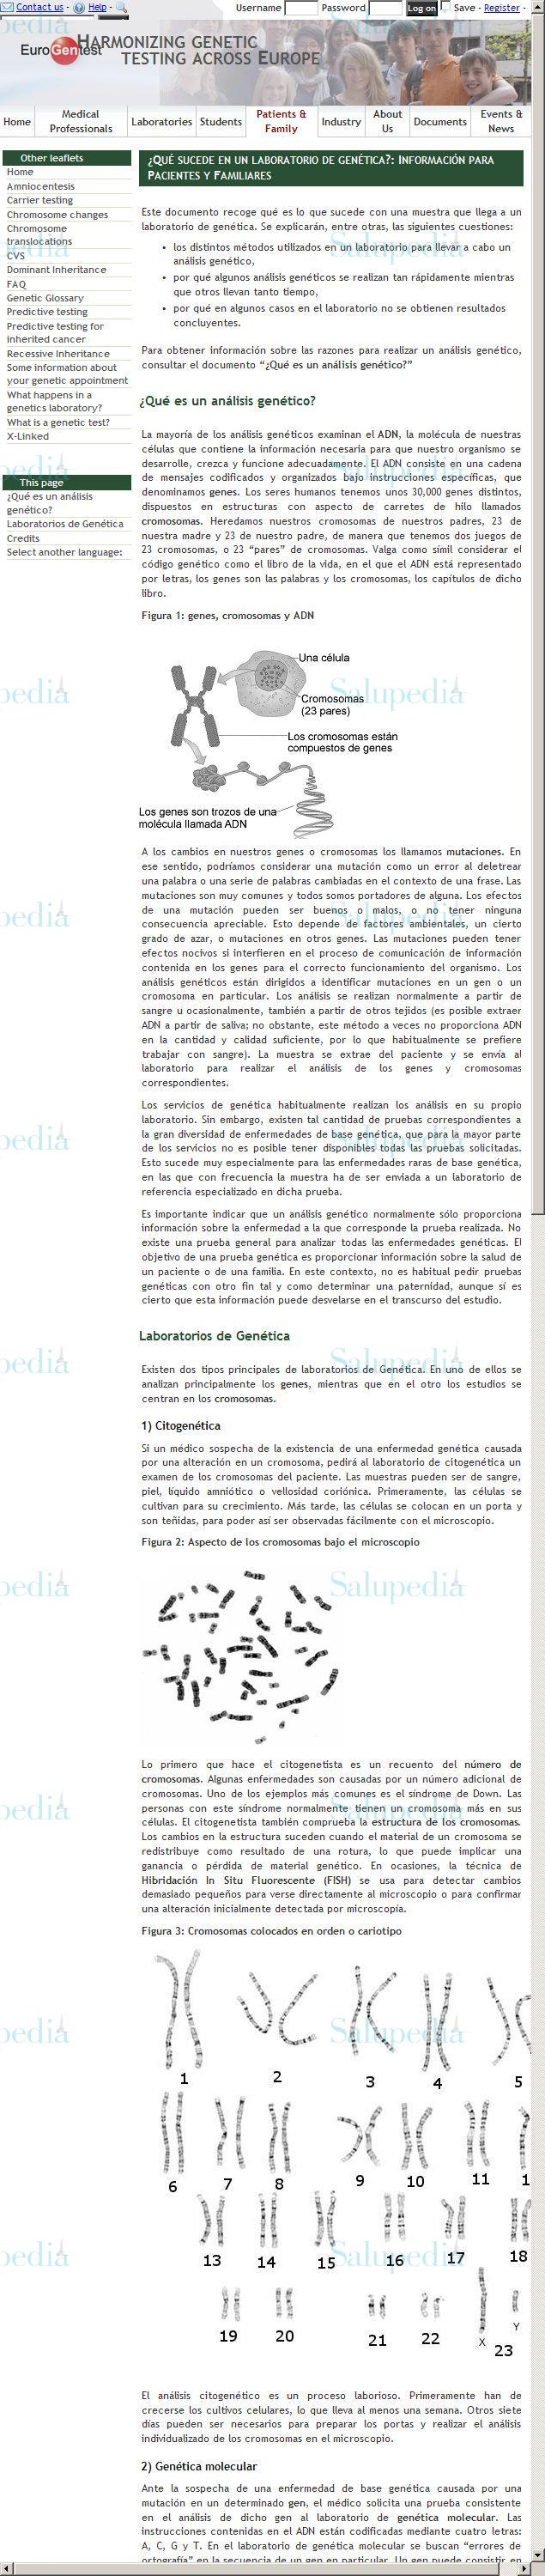 Cache grafica http://www.eurogentest.org/patient/leaflet/spanish/what_happens.xhtml